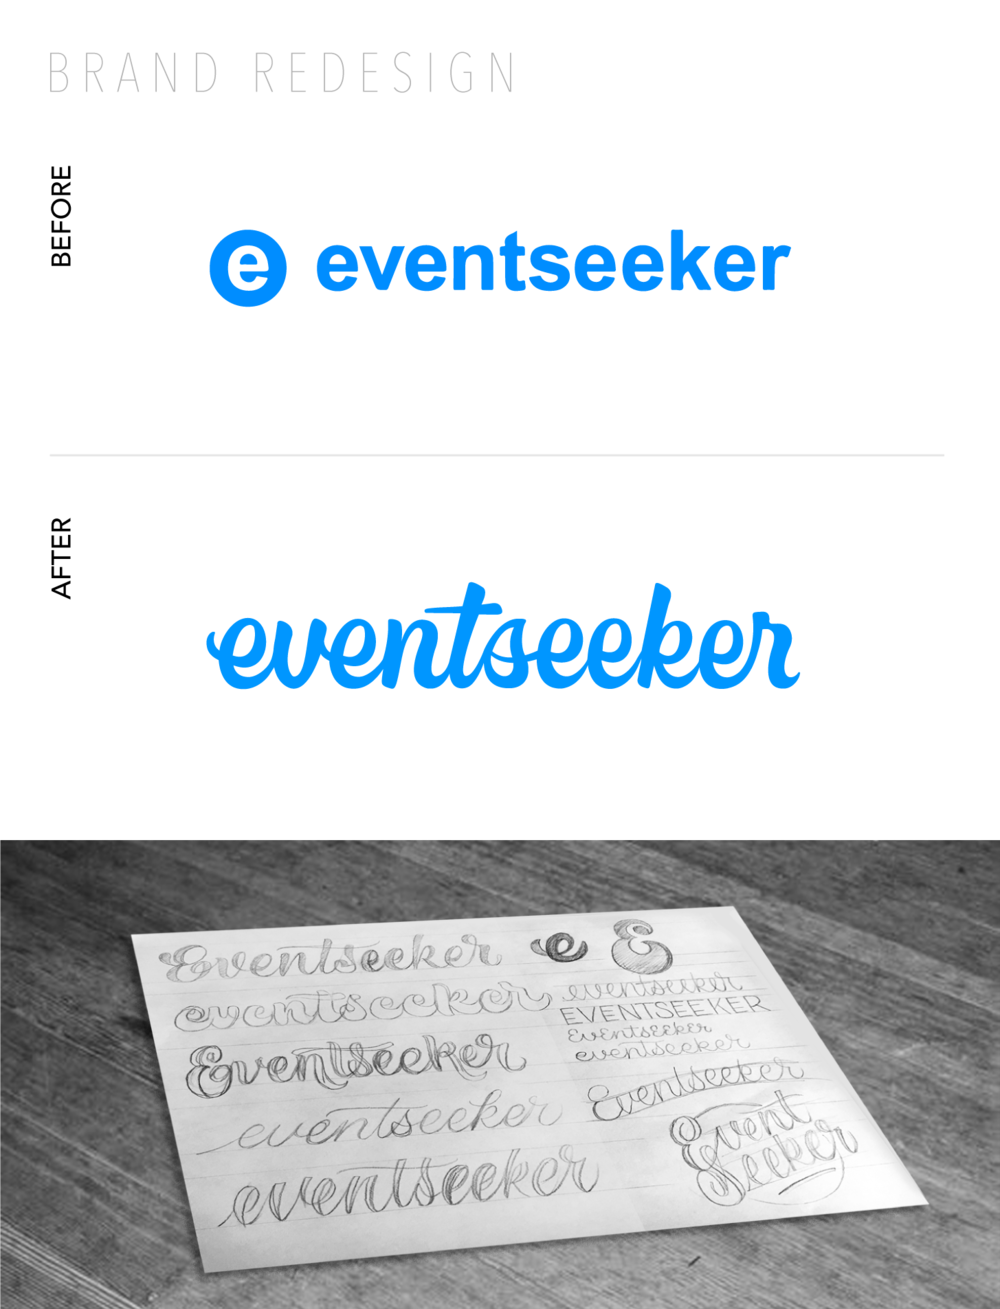 Eventseeker_Website_1.png